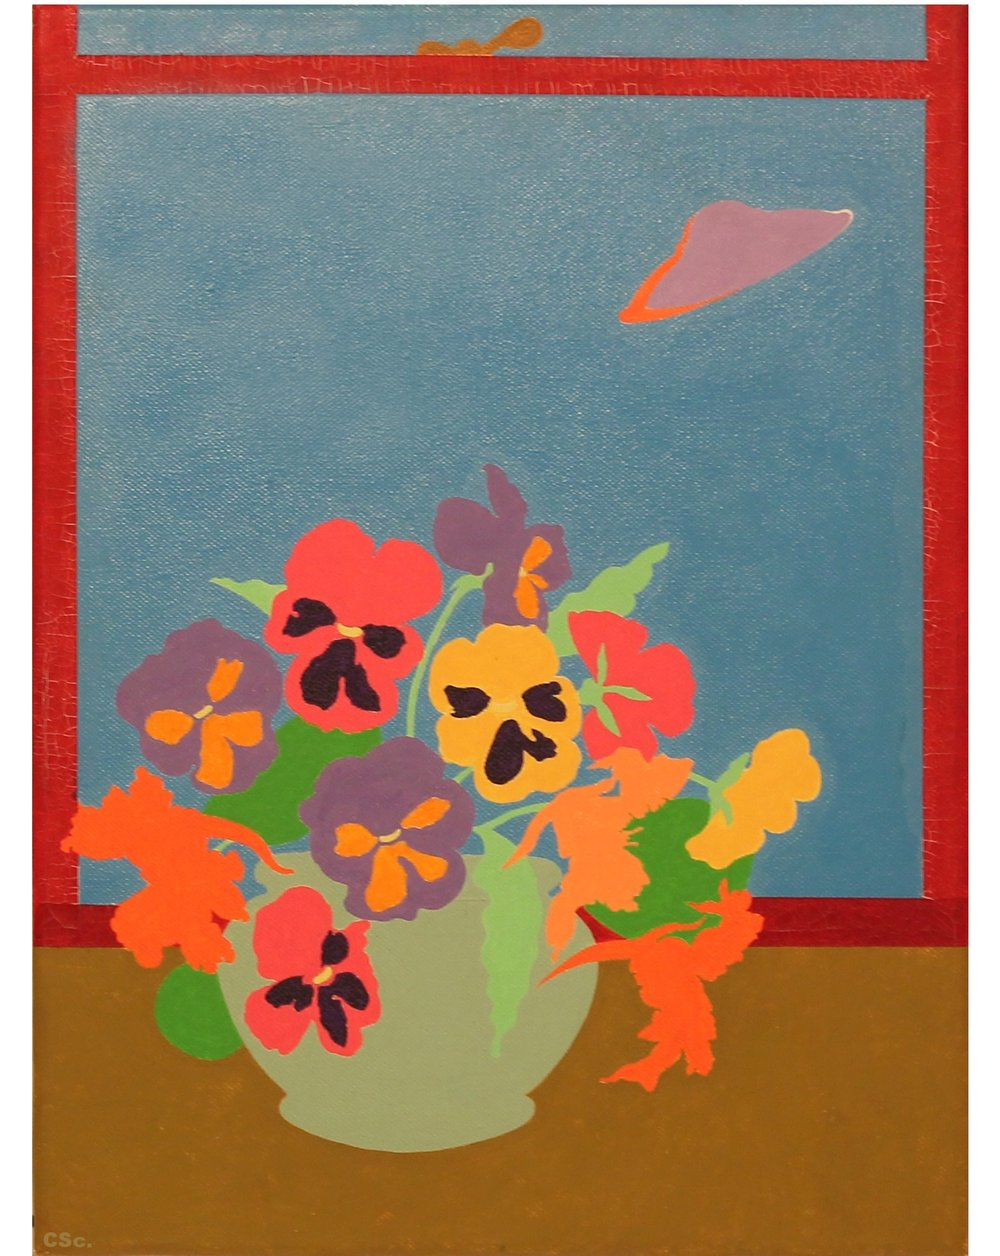 Still Life with Flying Saucer, 2005, acrylic on canvas, 40x30cm